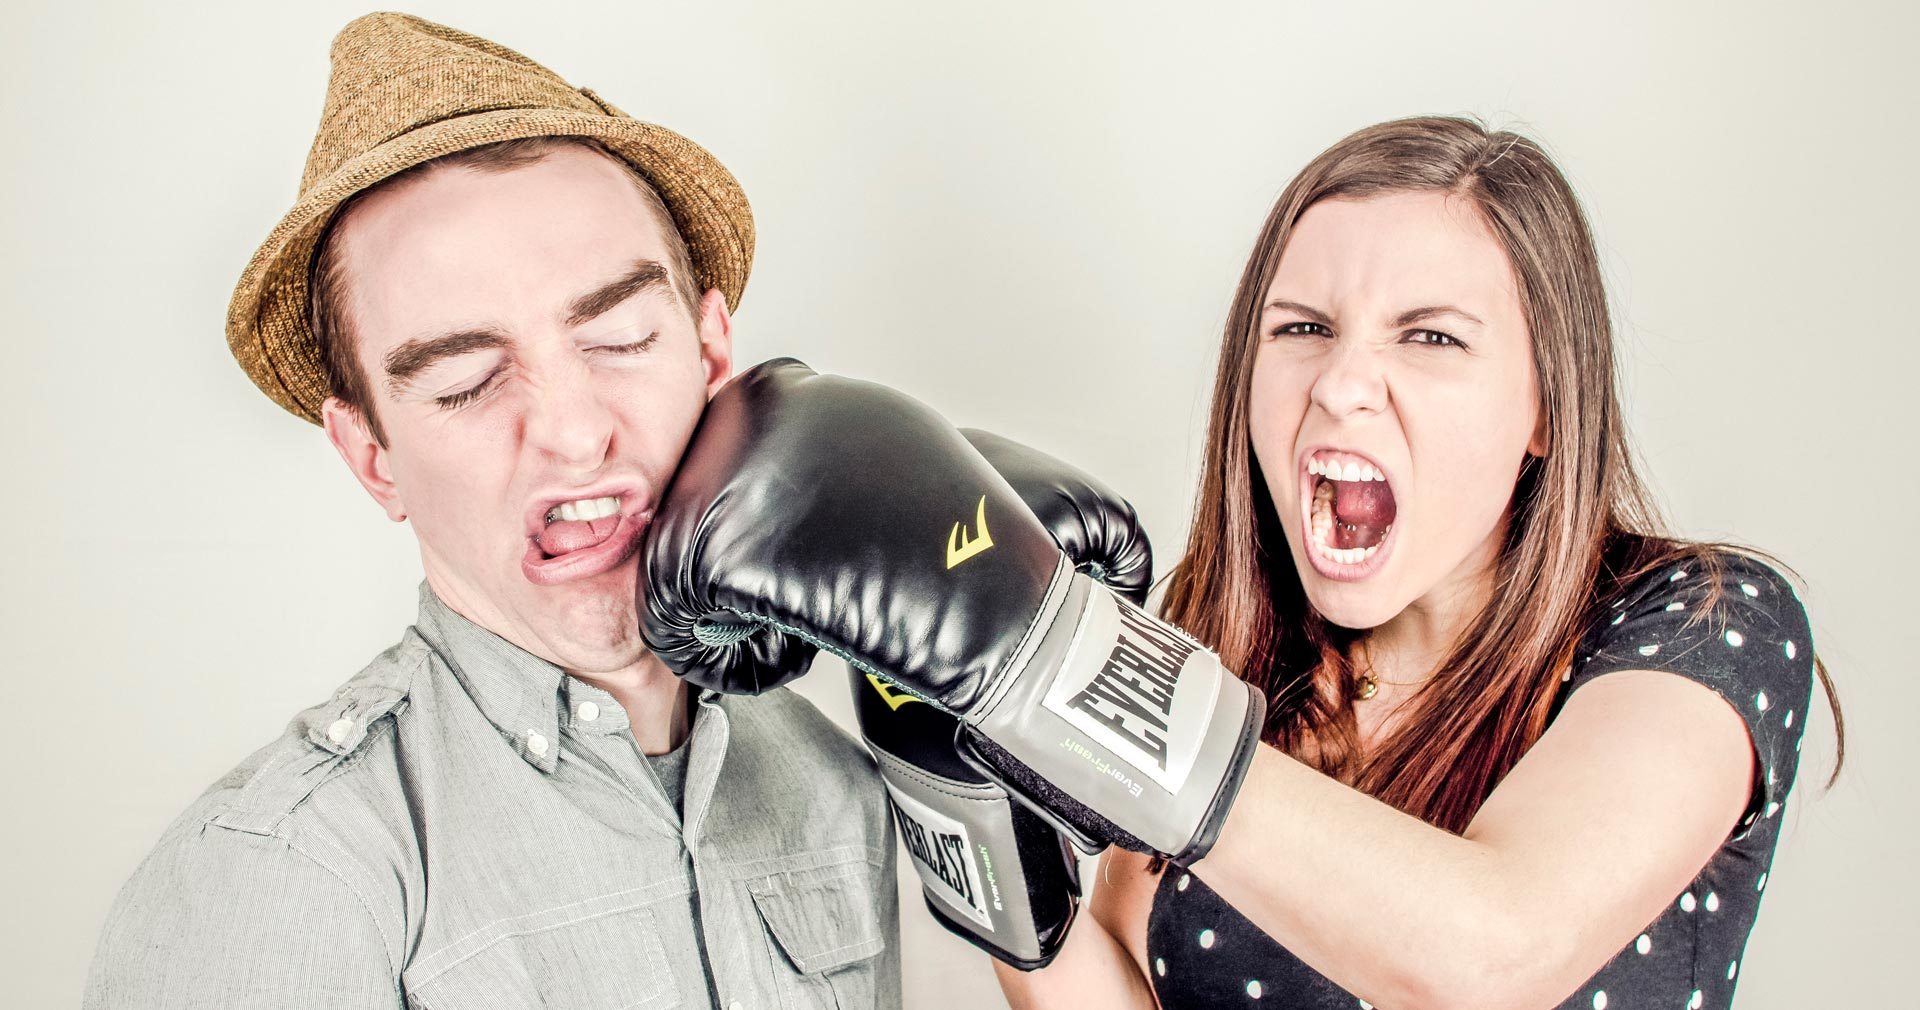 Image of a girl wearing boxing gloves punching a guy in a hat